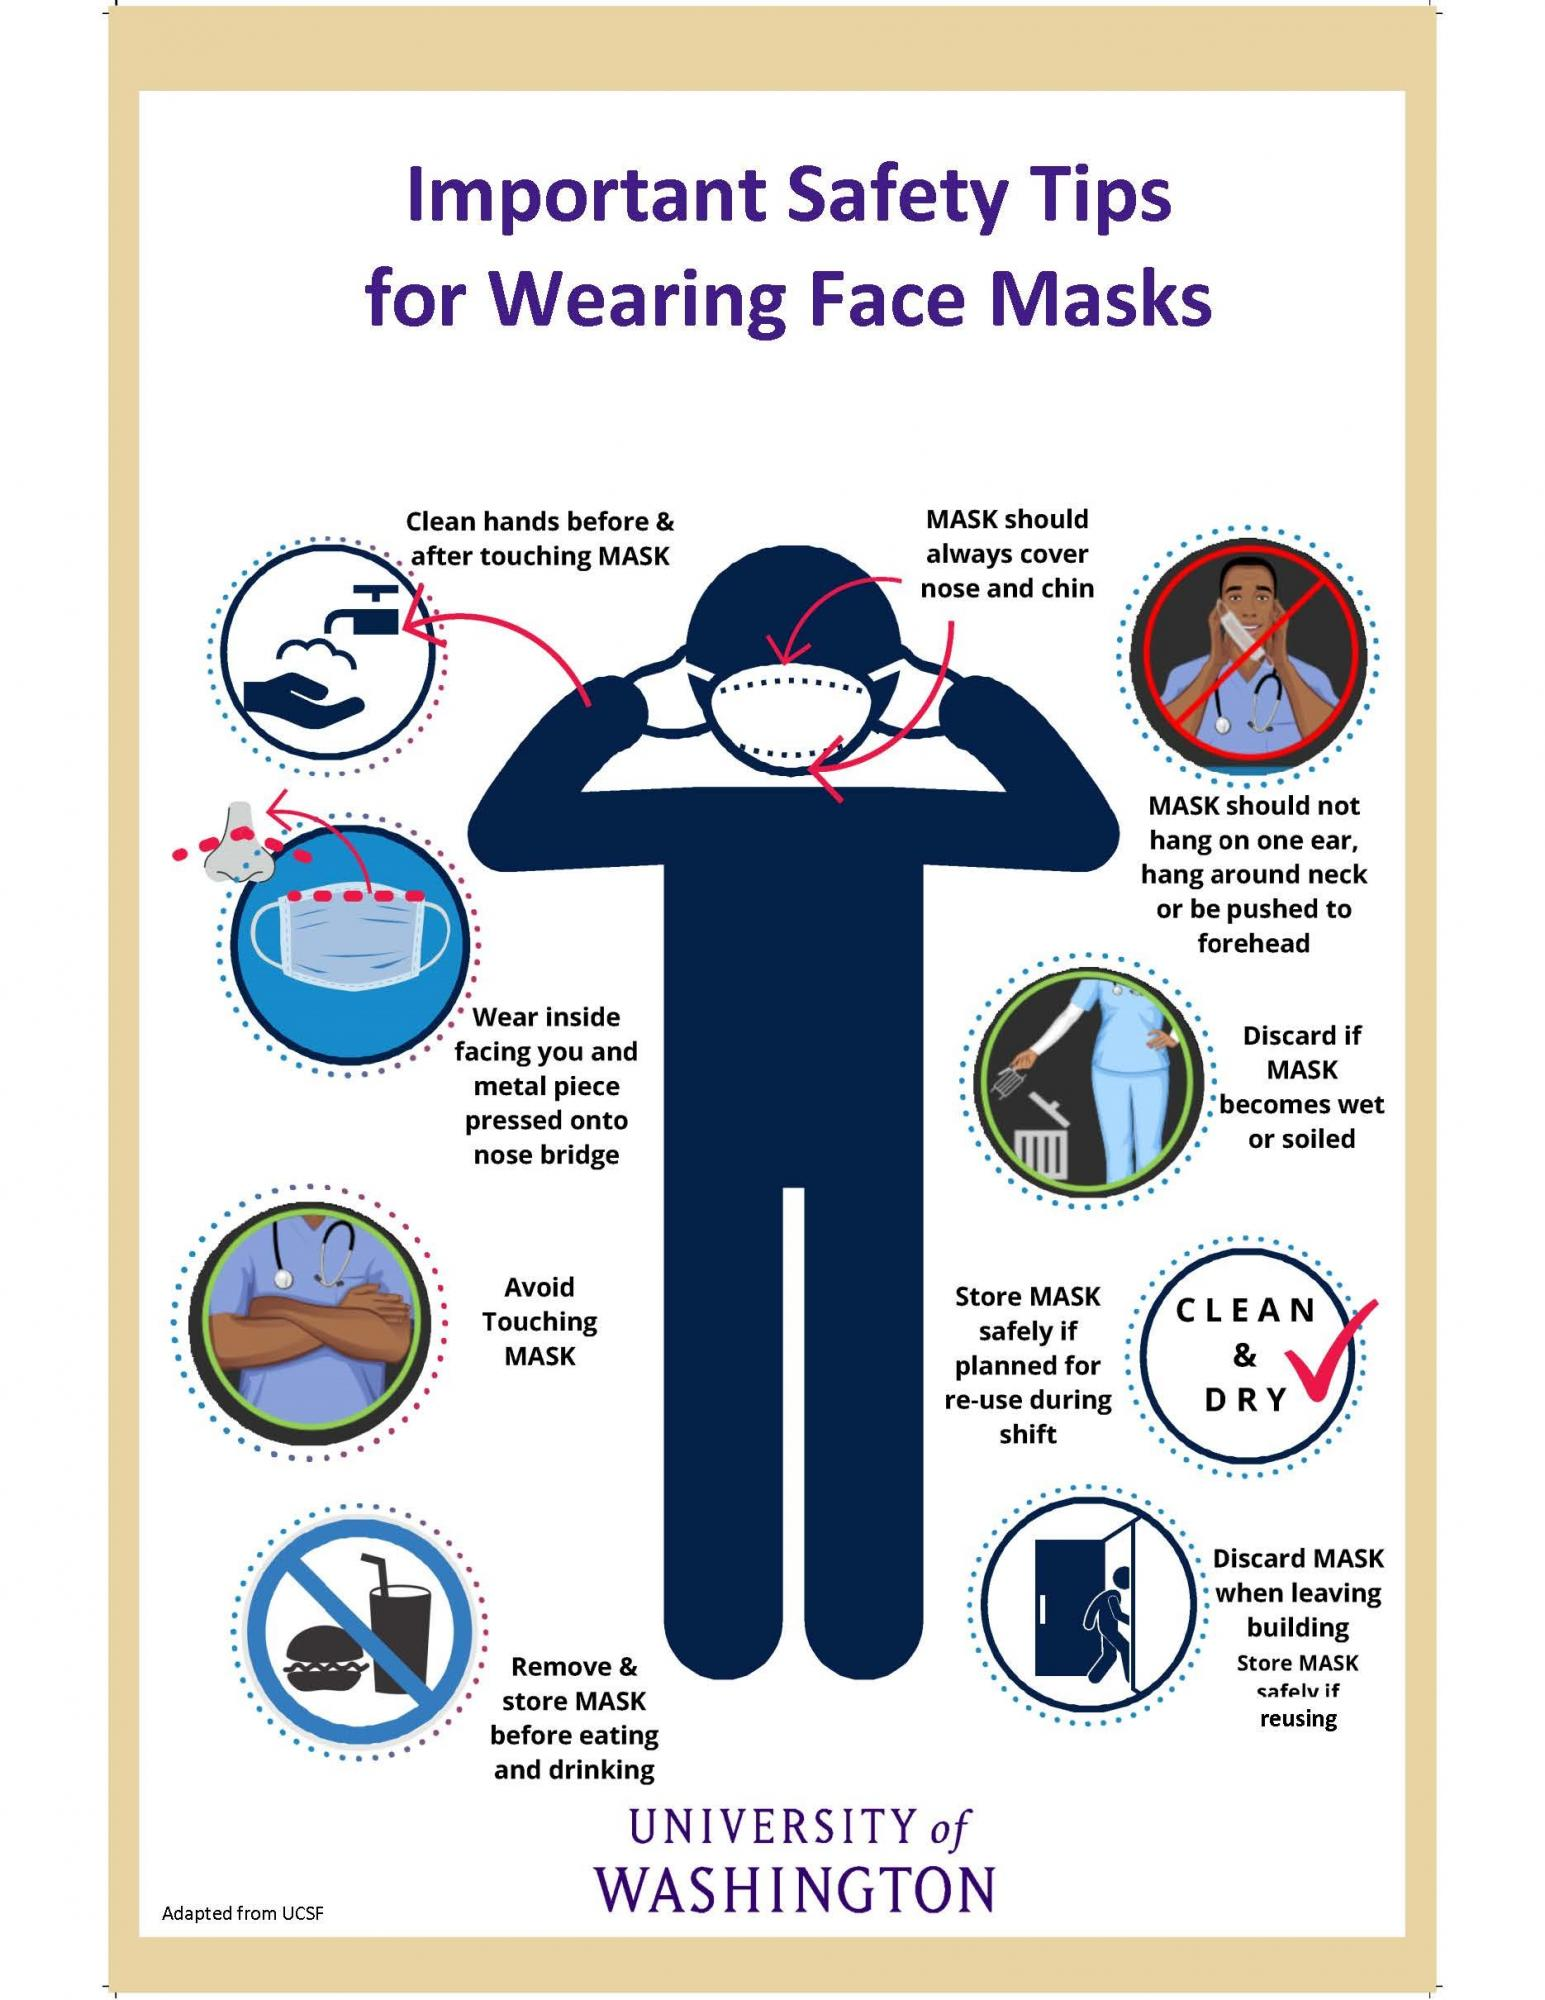 tips for wearing facemasks